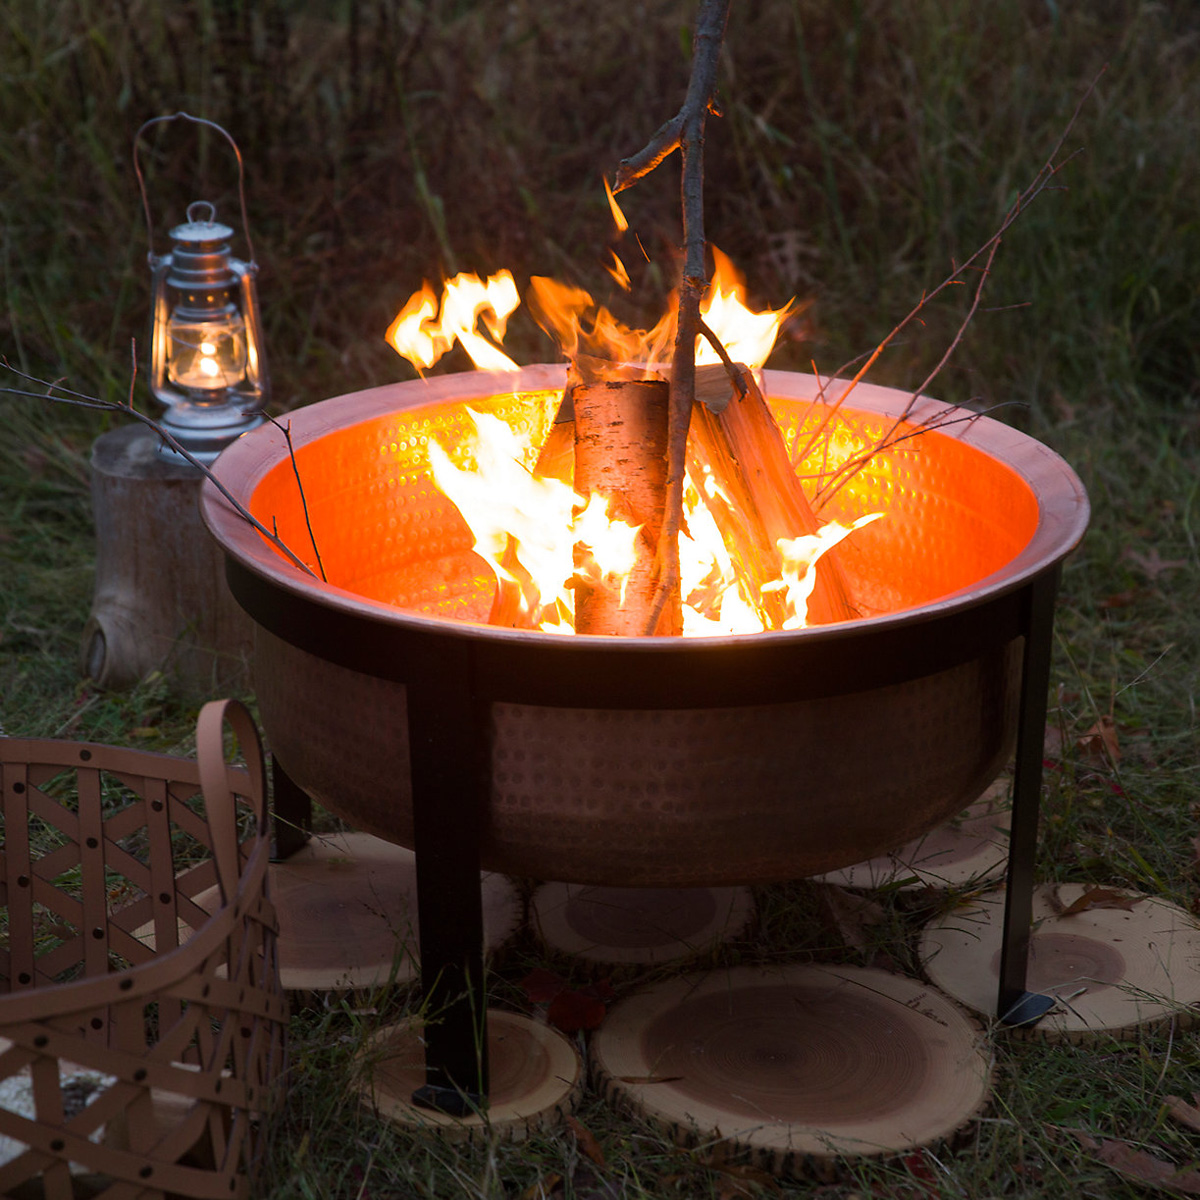 Table Fire Pit : Handcrafted copper fire pit grill table the green head